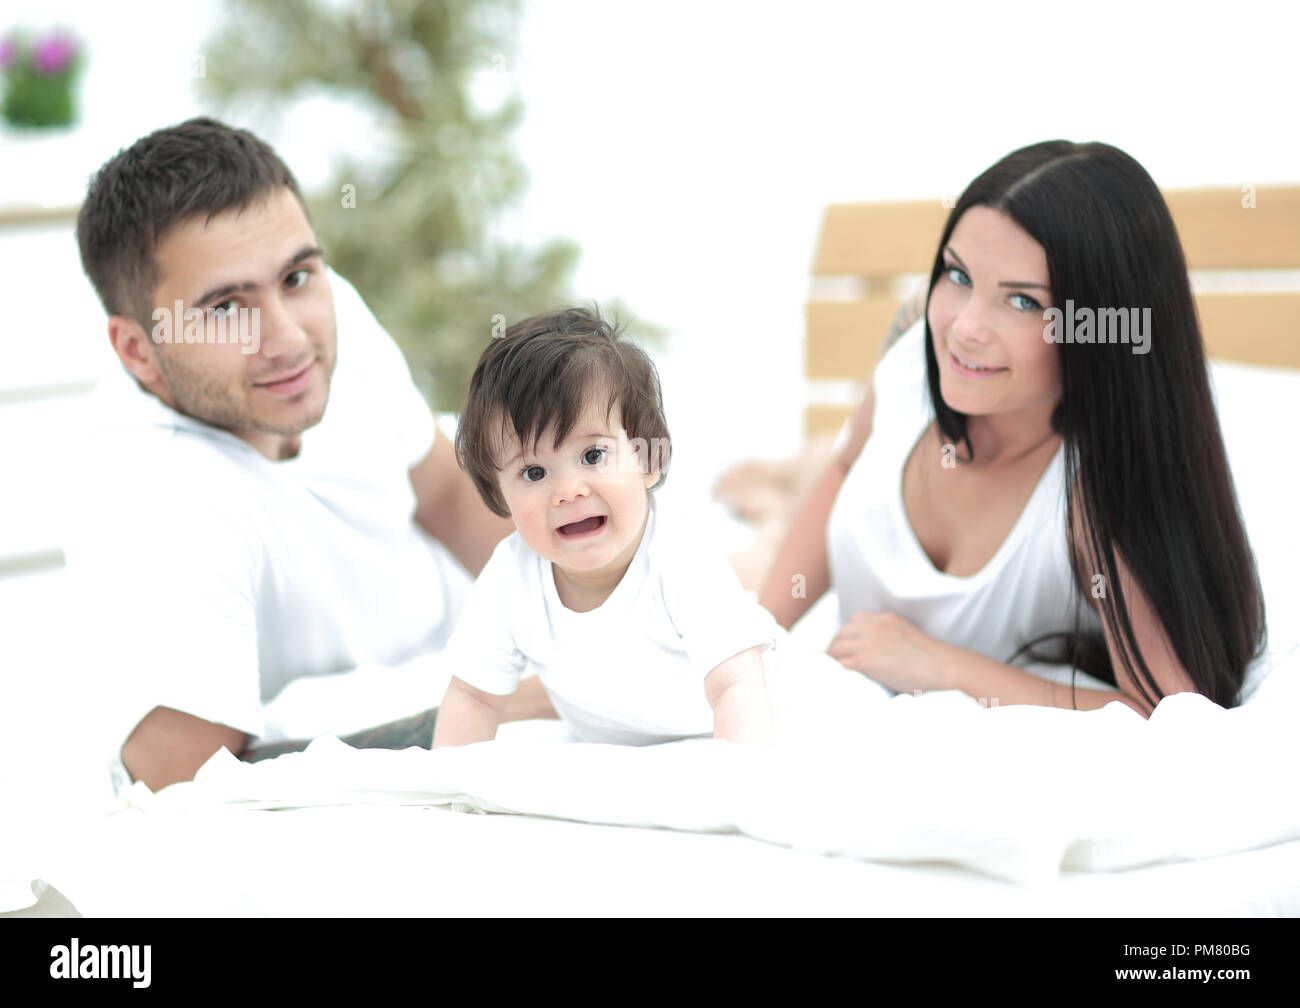 Ð¡harming young family with a toddler lying in bed and smiling - Stock Image